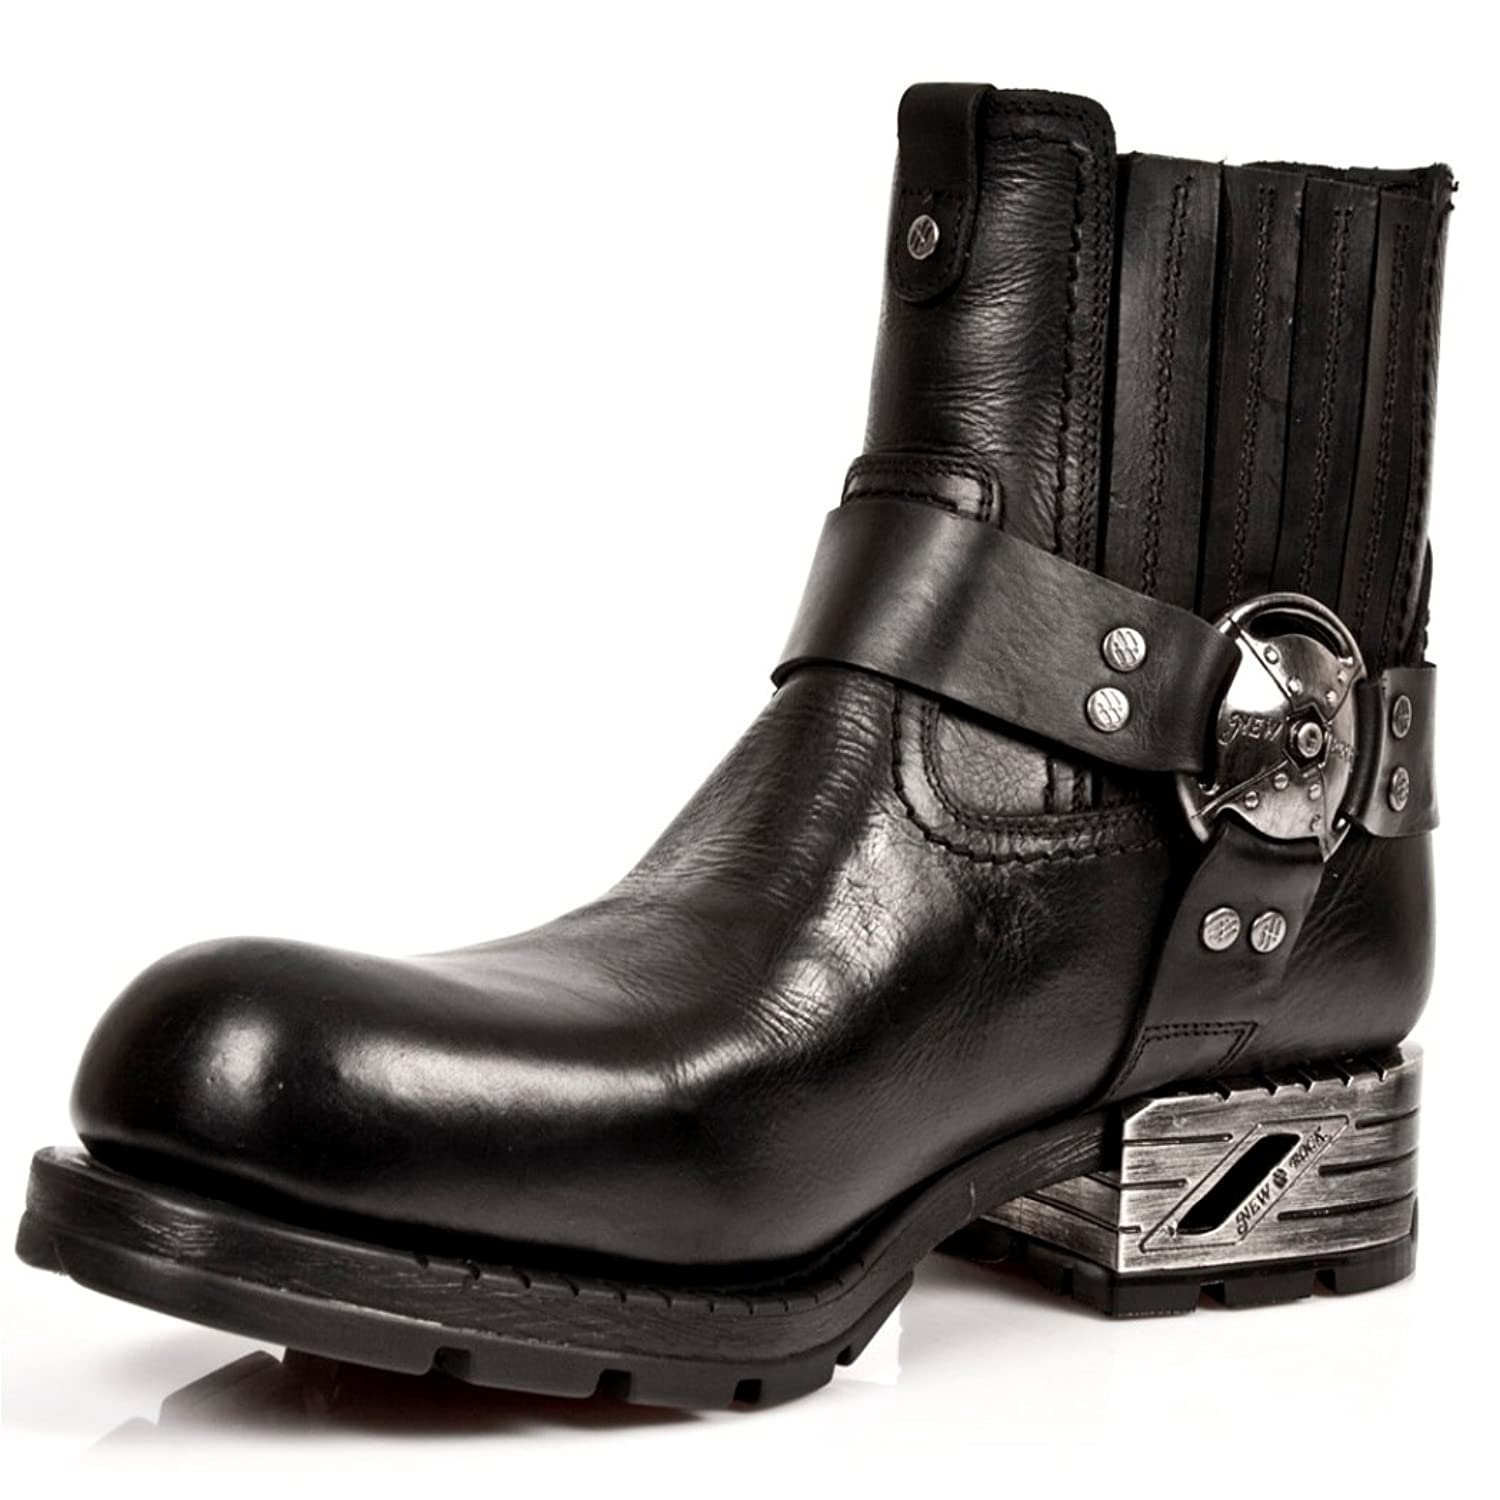 New Rock NEWROCK Nr M.MR007 S1 Black Boots - Mens: Amazon.co.uk: Shoes &  Bags